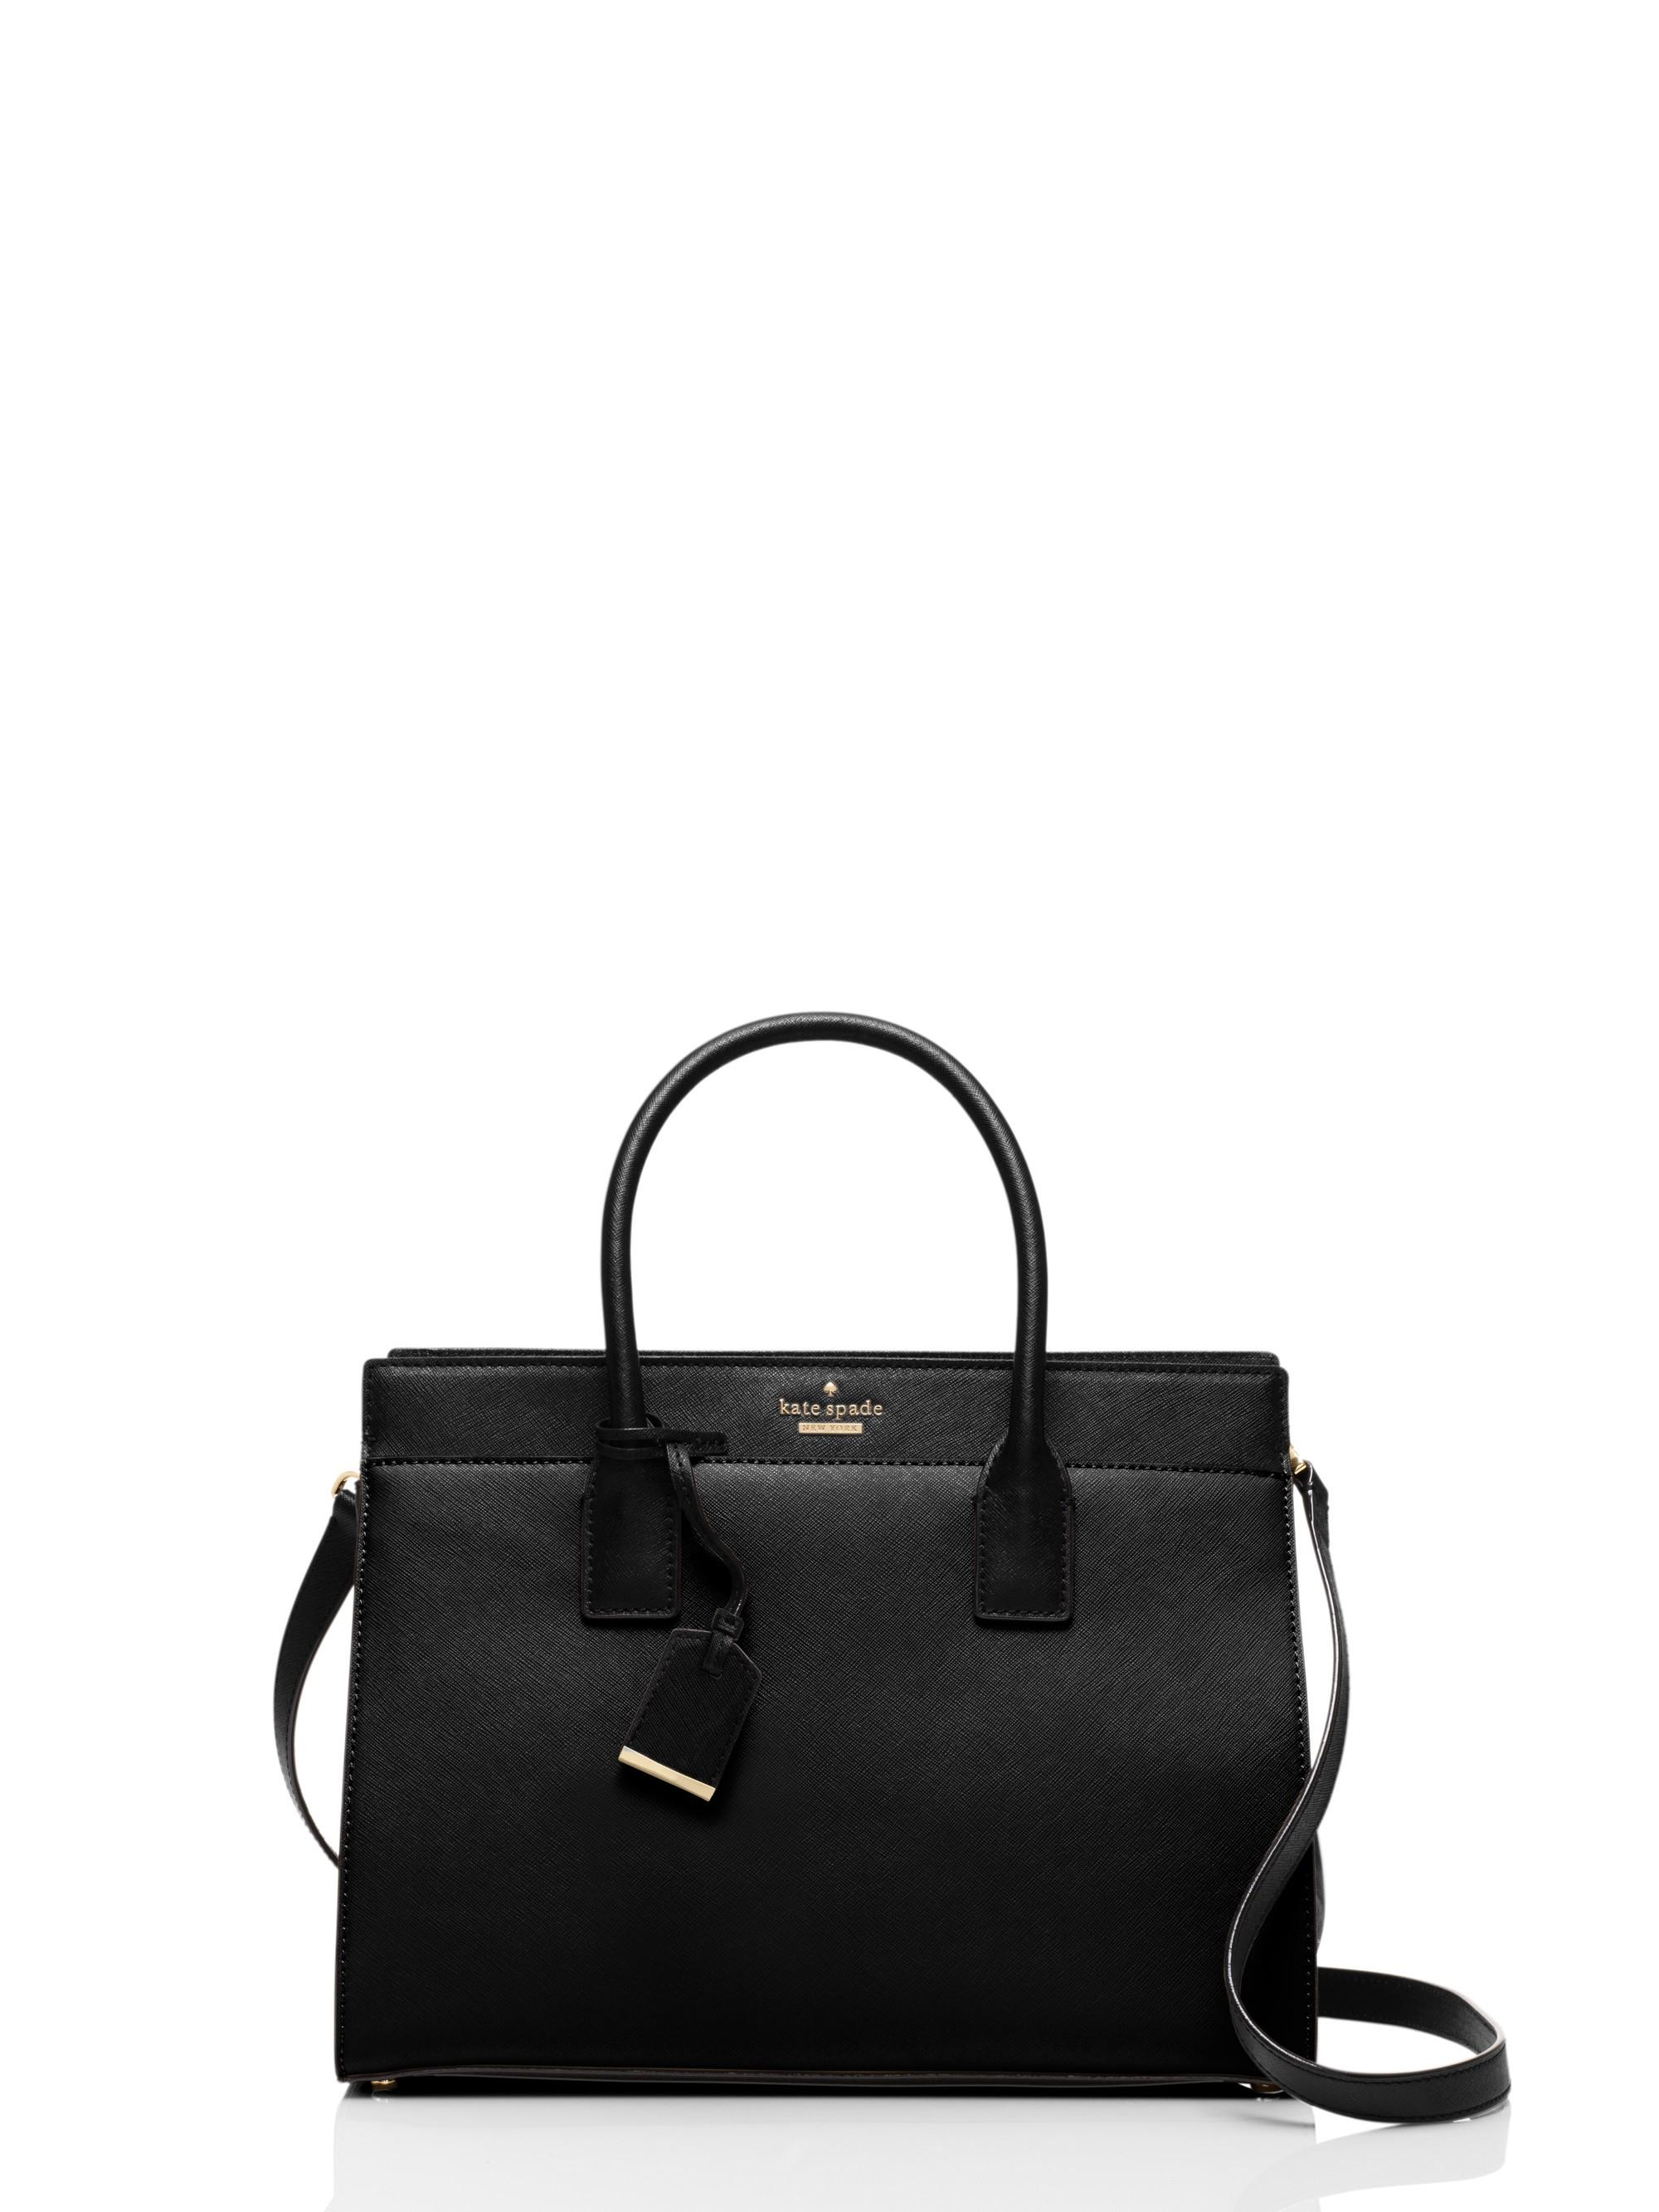 Kate Spade Cameron Street Candace Satchel In Black